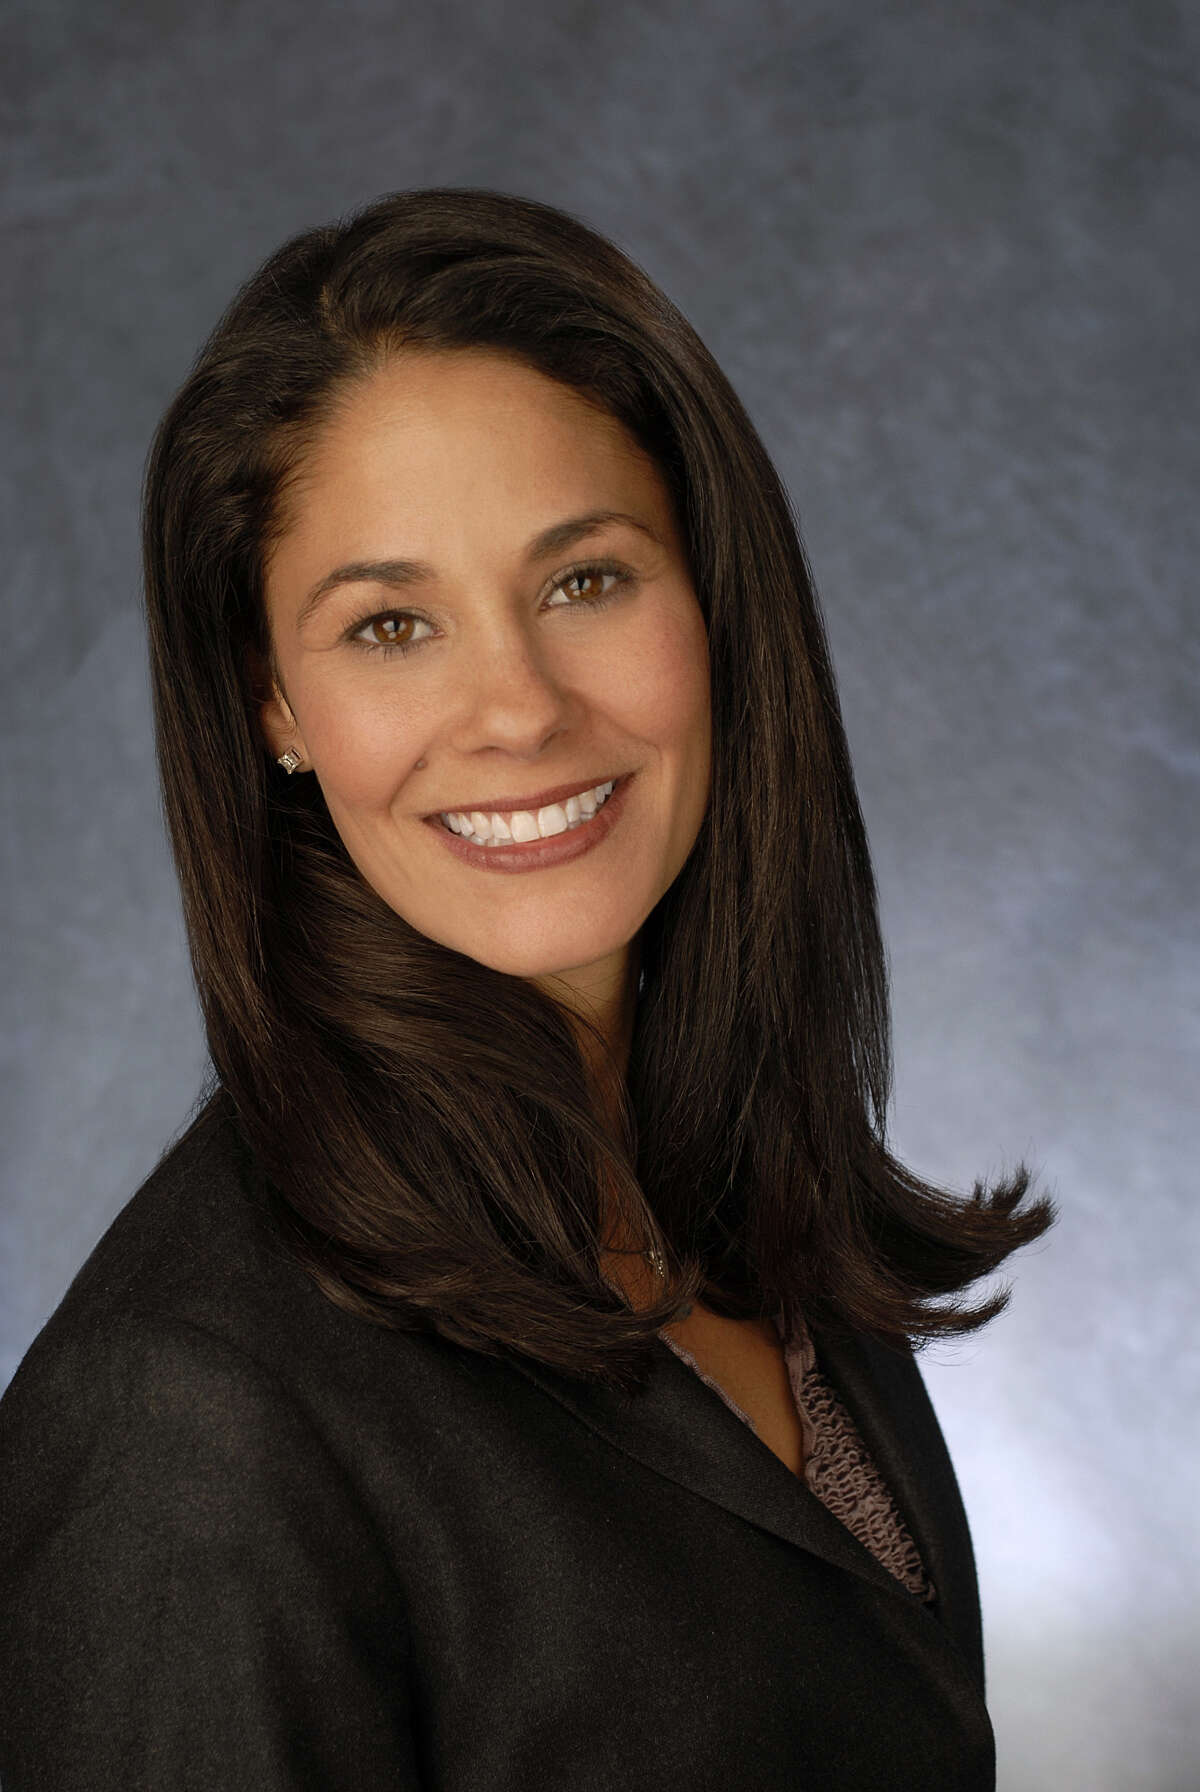 Tracy Wolfson. CBS Sports Reporter Photo: John Paul Filo/CBS ©2008 CBS Broadcasting Inc. All Rights Reserved ORG XMIT: CBS